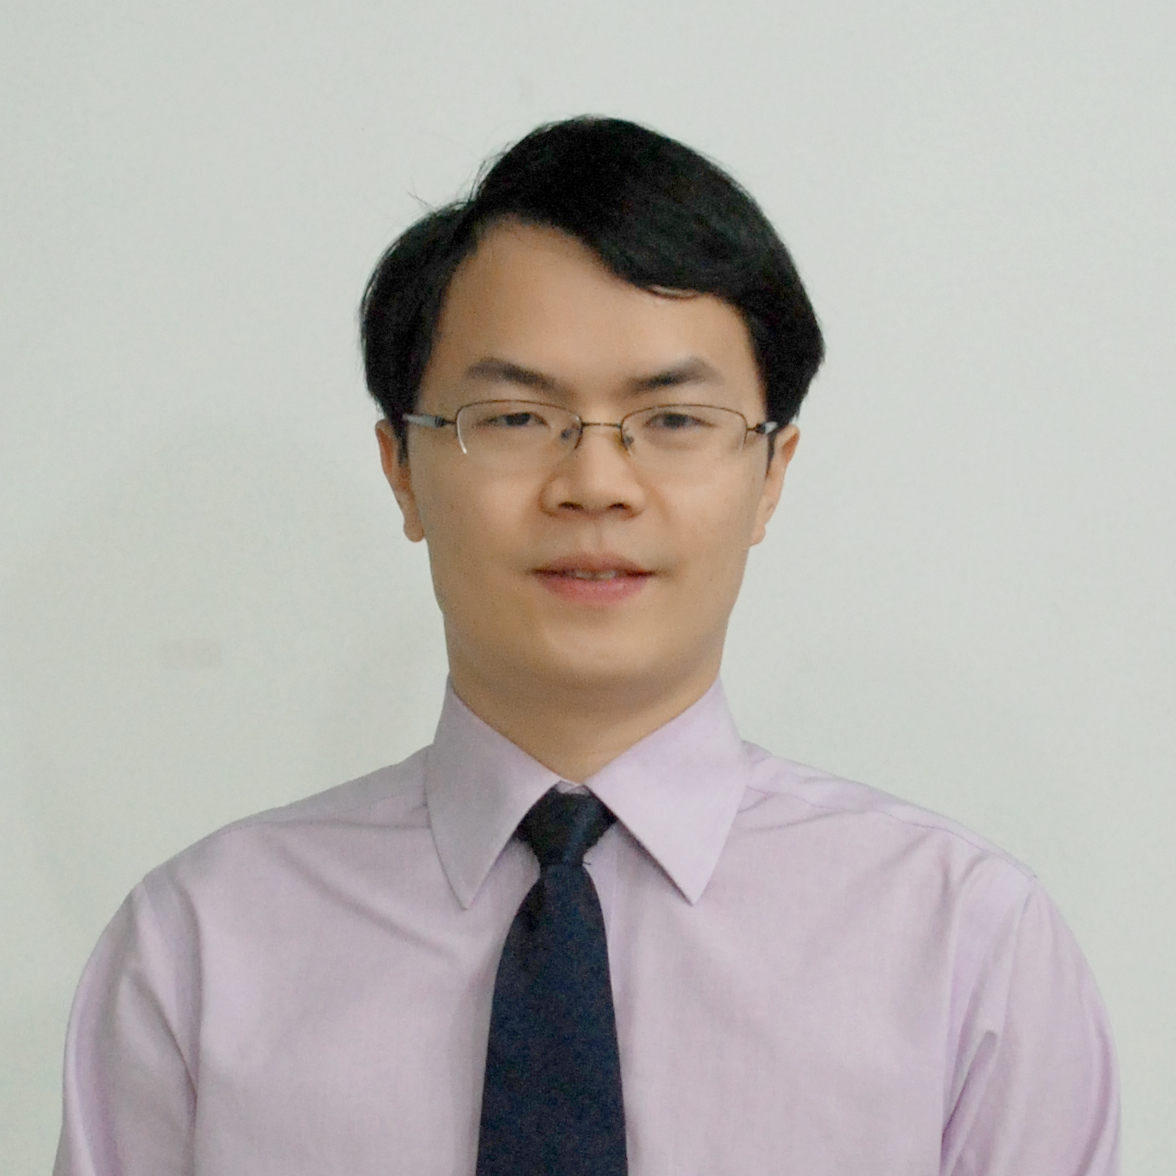 Congratulations Prof. Yang Feng on receiving a National Science Foundation (NSF) Career Award